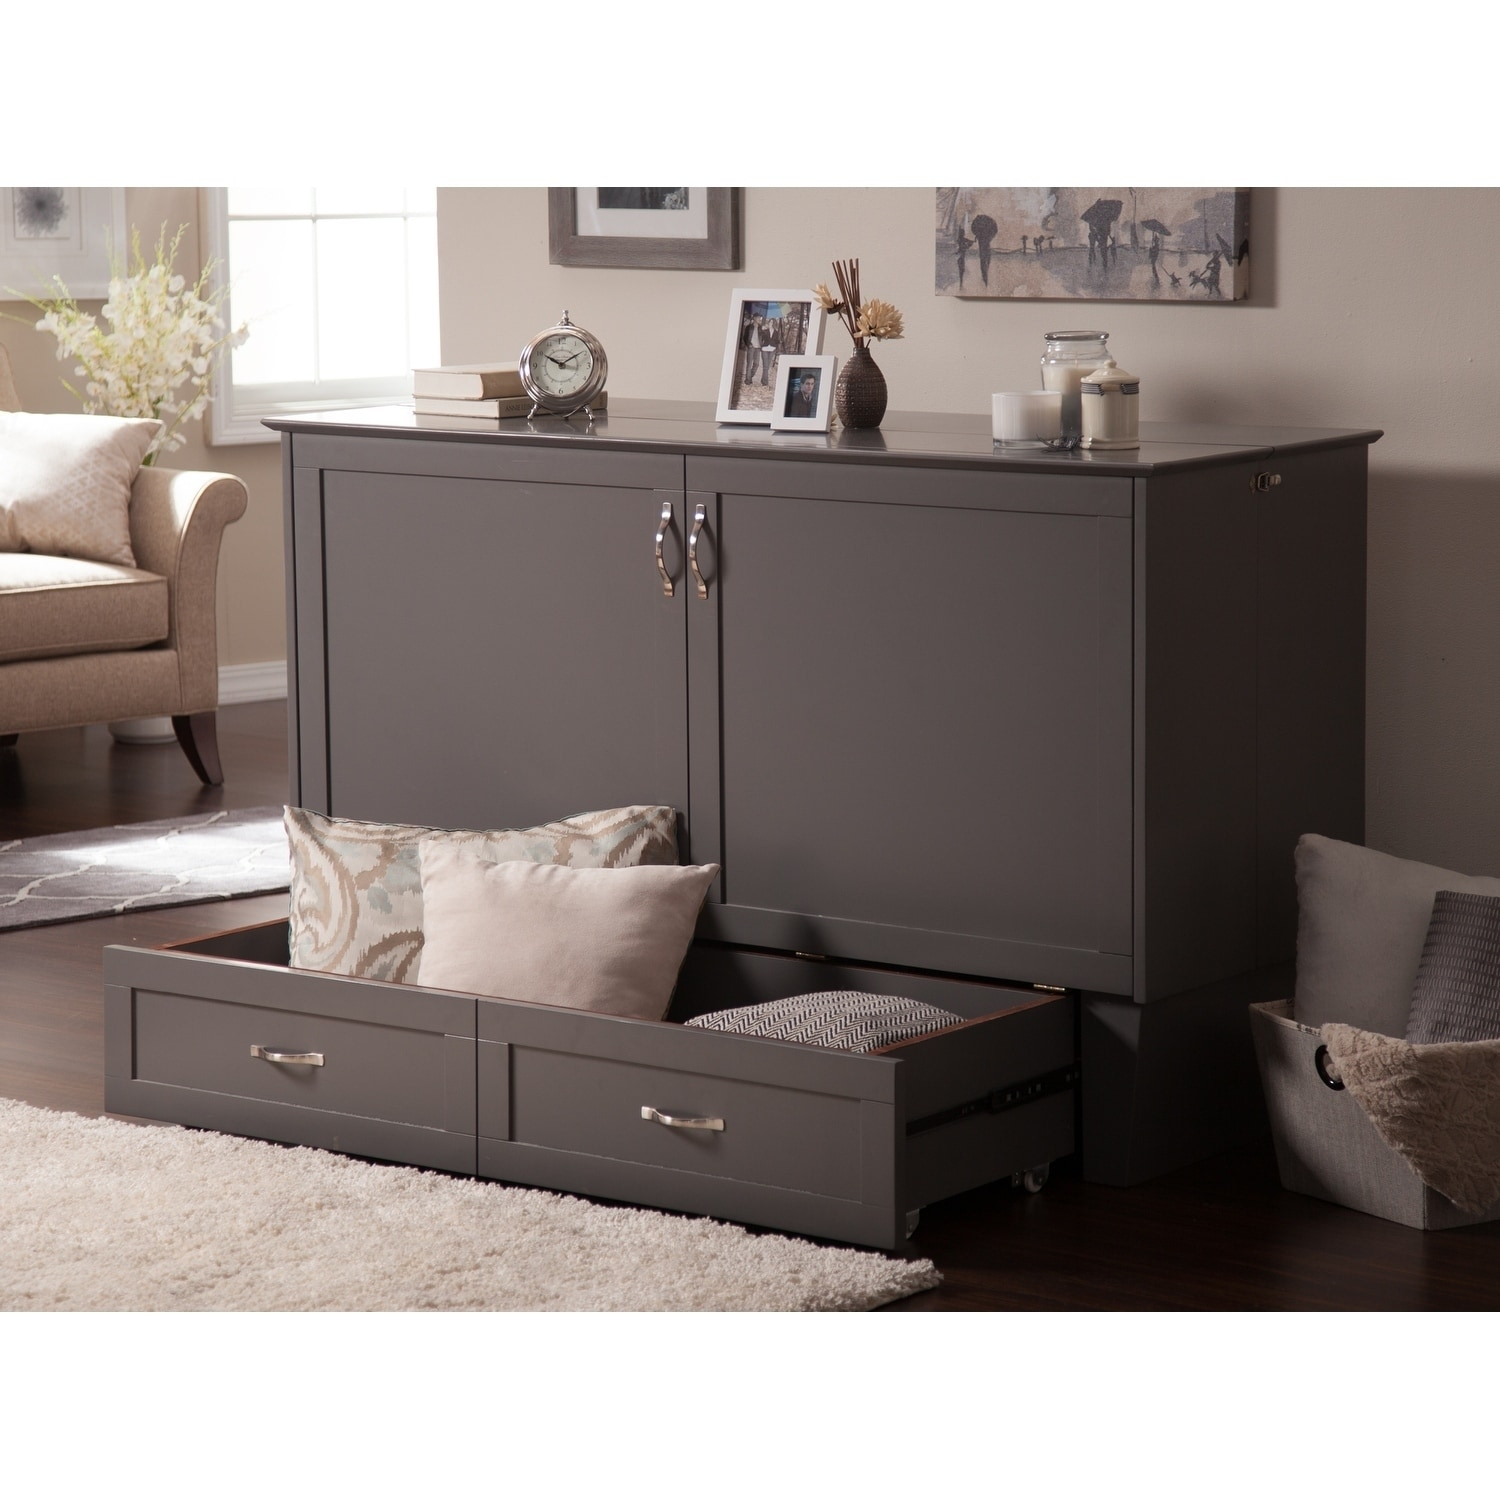 Atlantic Furniture Madison Murphy Queen Size Bed Chest In Atlantic Grey  Finish With USB Charging